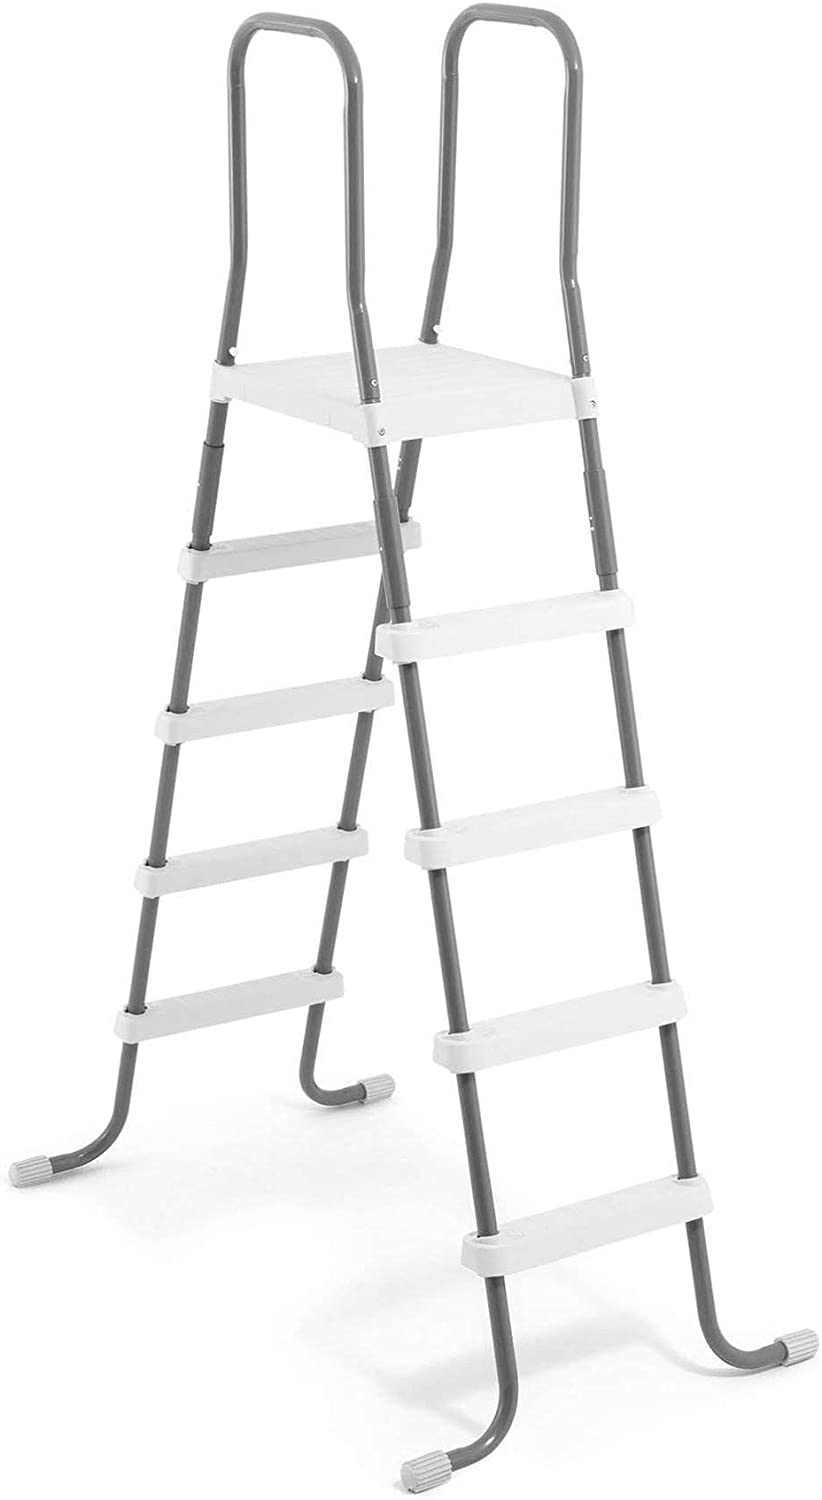 Intex Steel Frame Above Ground Swimming Pool Ladder for 52 Inch Wall Height Pools: Amazon.es: Jardín